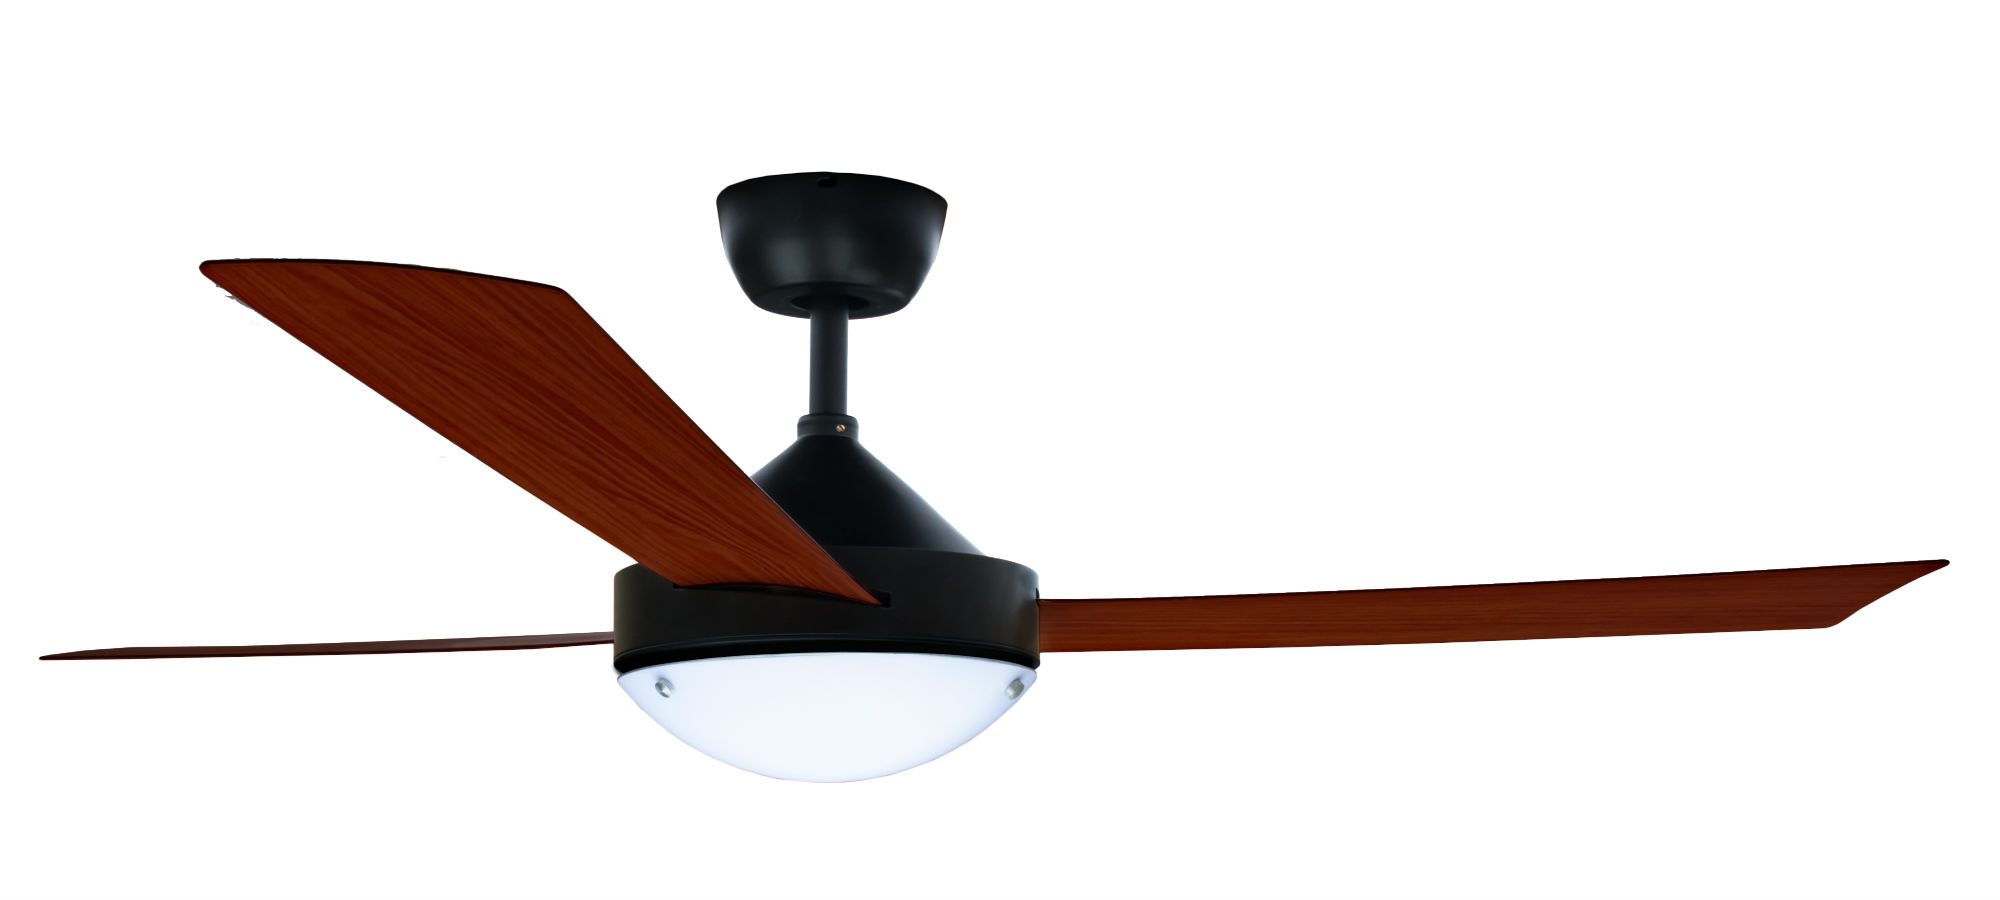 Milano Matt Black With Dark Teak Finish 3 Metal Blade Fan